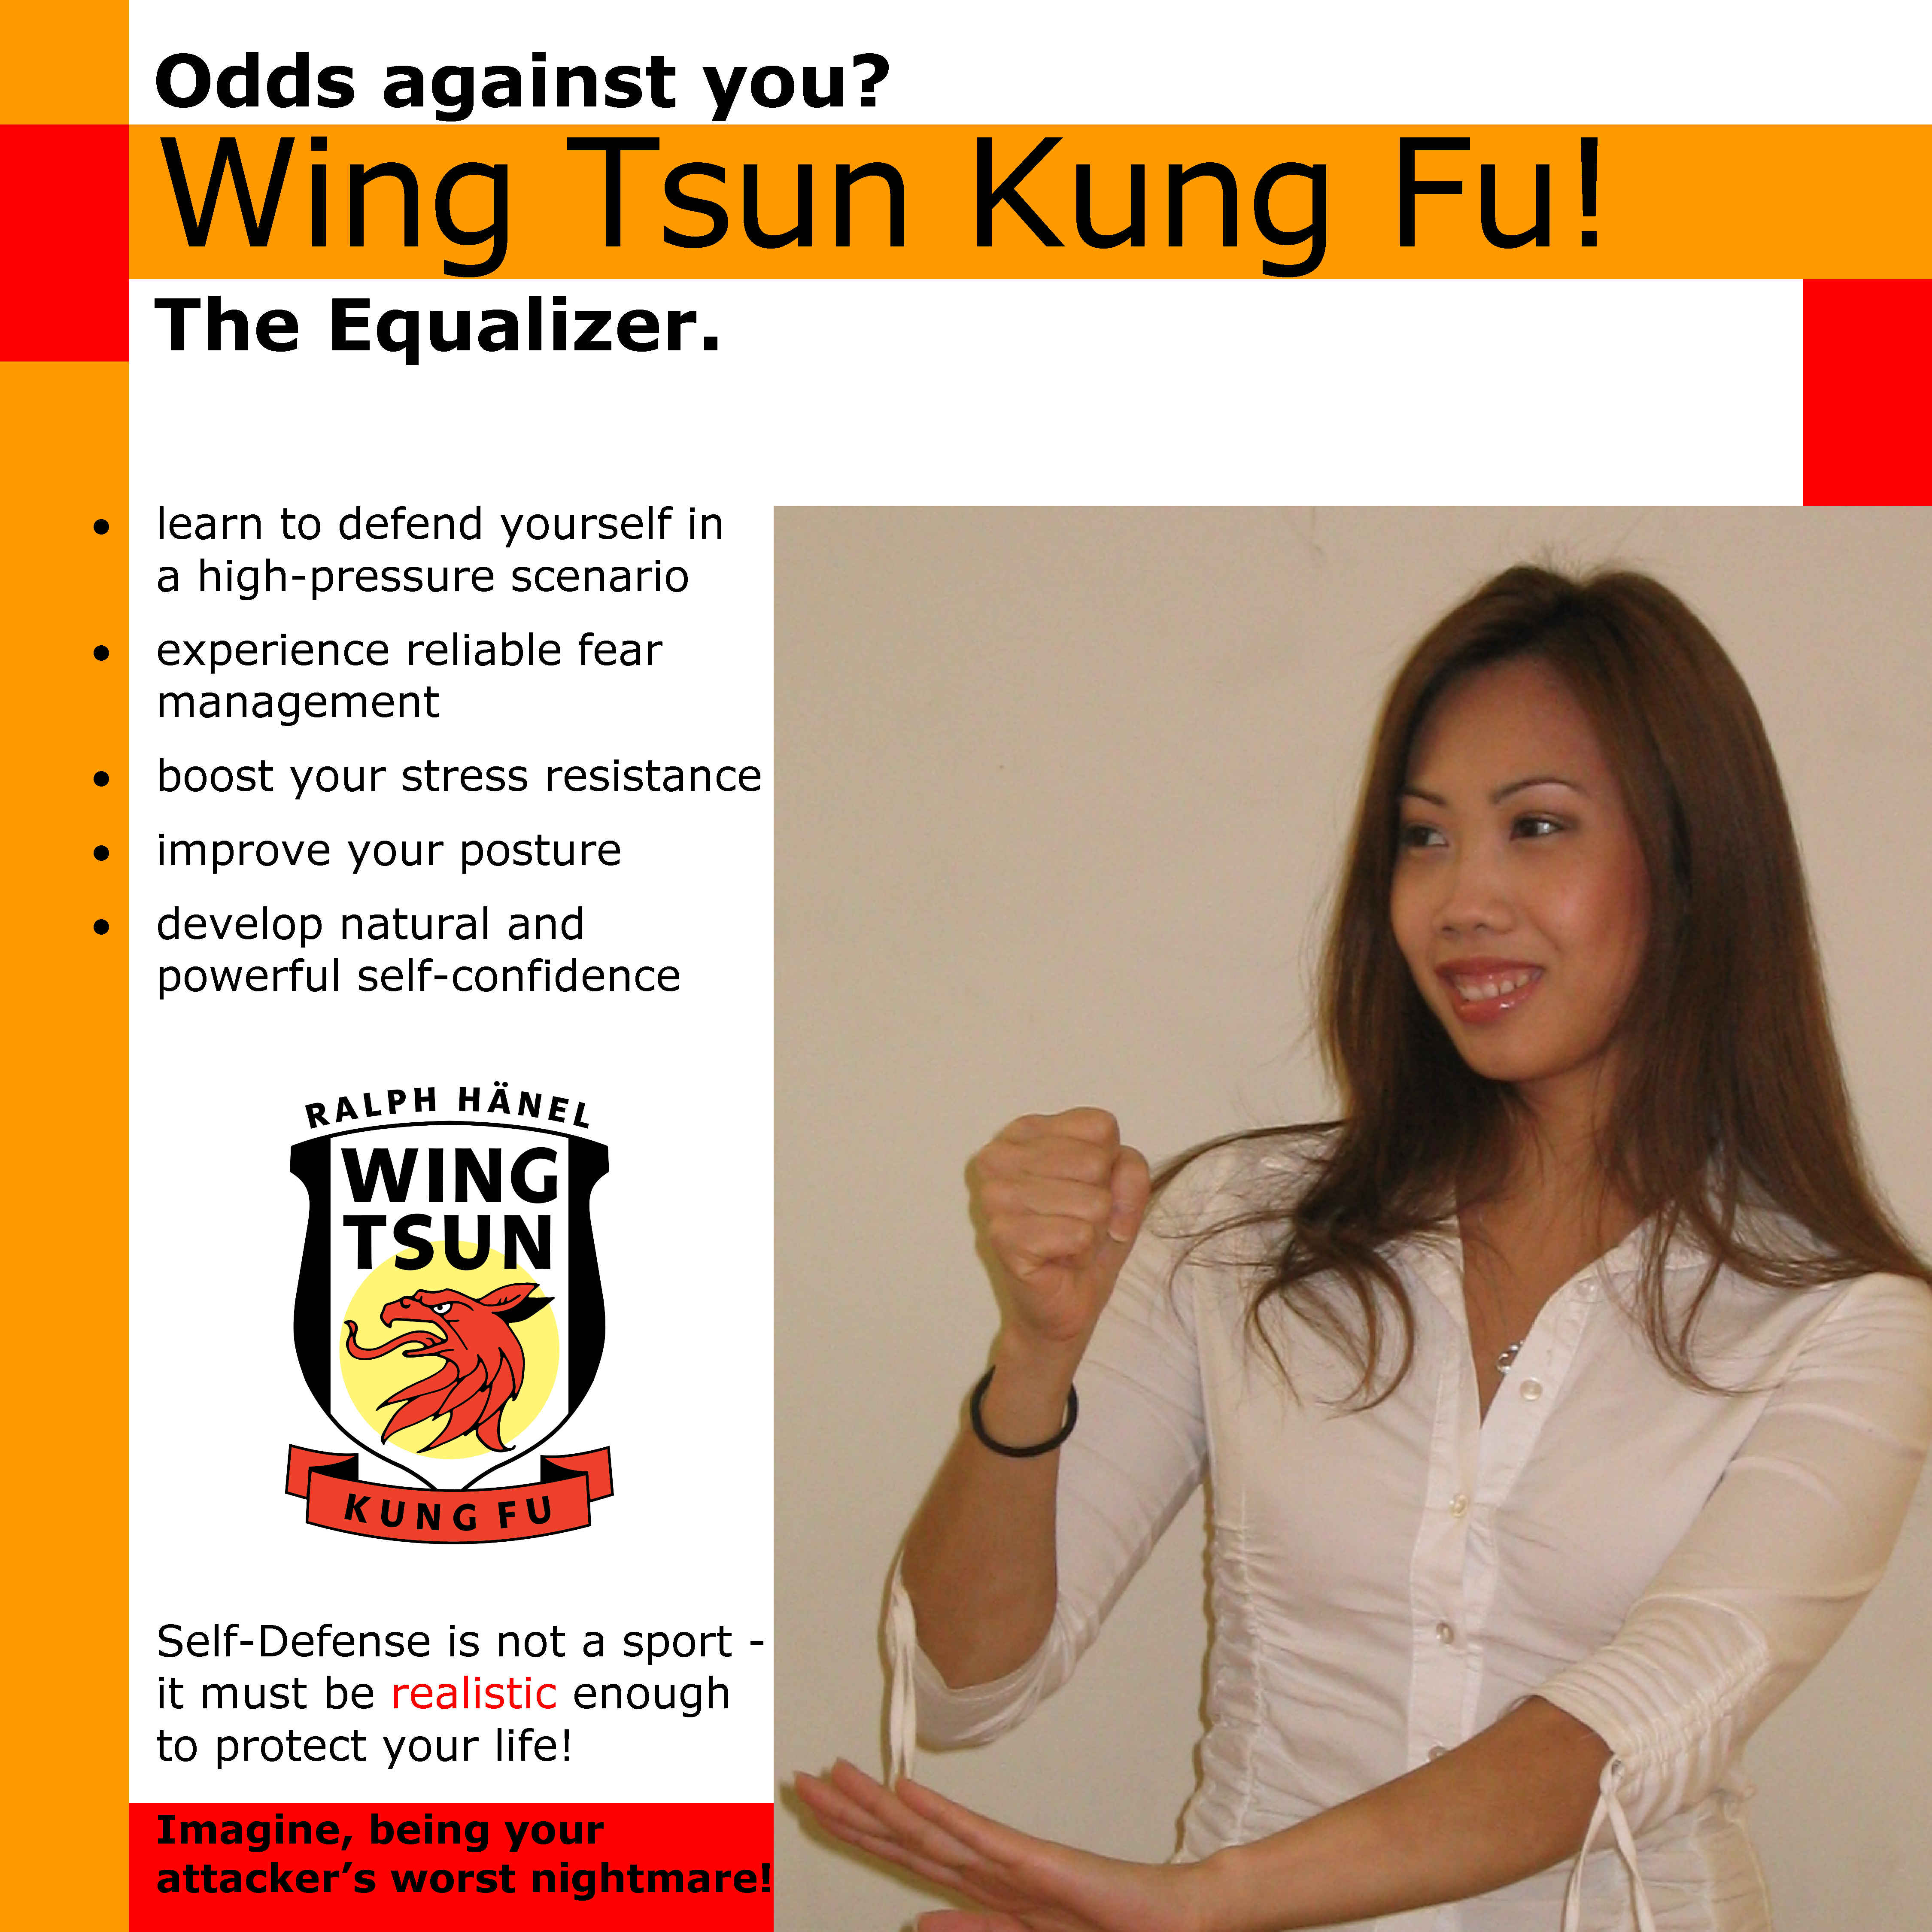 Click here to download our free 2008/2009 24 page Wing Tsun Kung Fu Brochure, download wingtsun vancouver, sifu ralph haenel